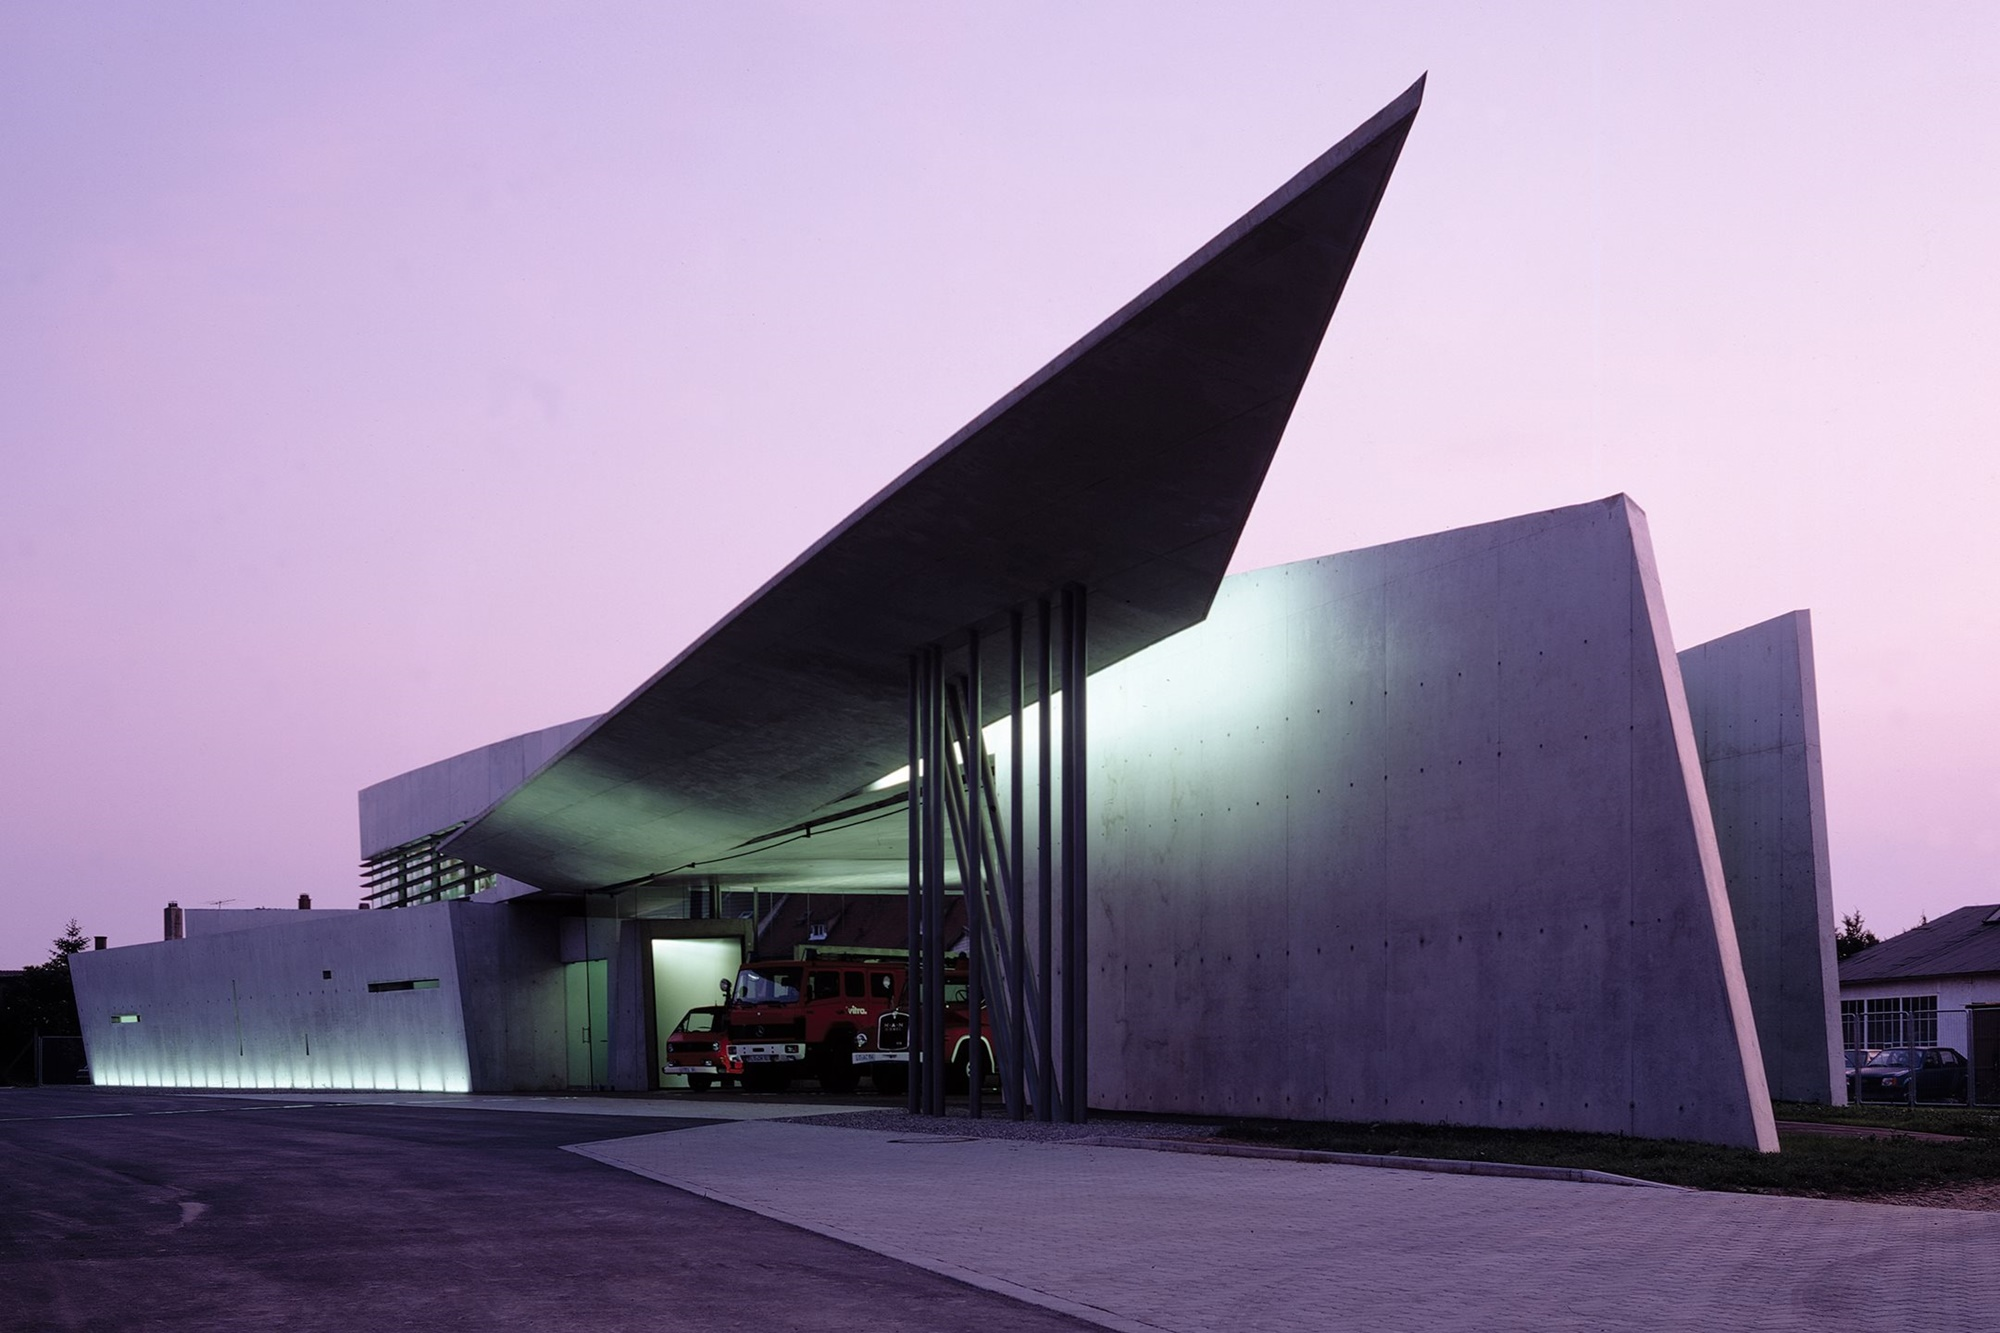 Vitra Fire Station by Zaha Hadid Architects Photograph by Christian Richters